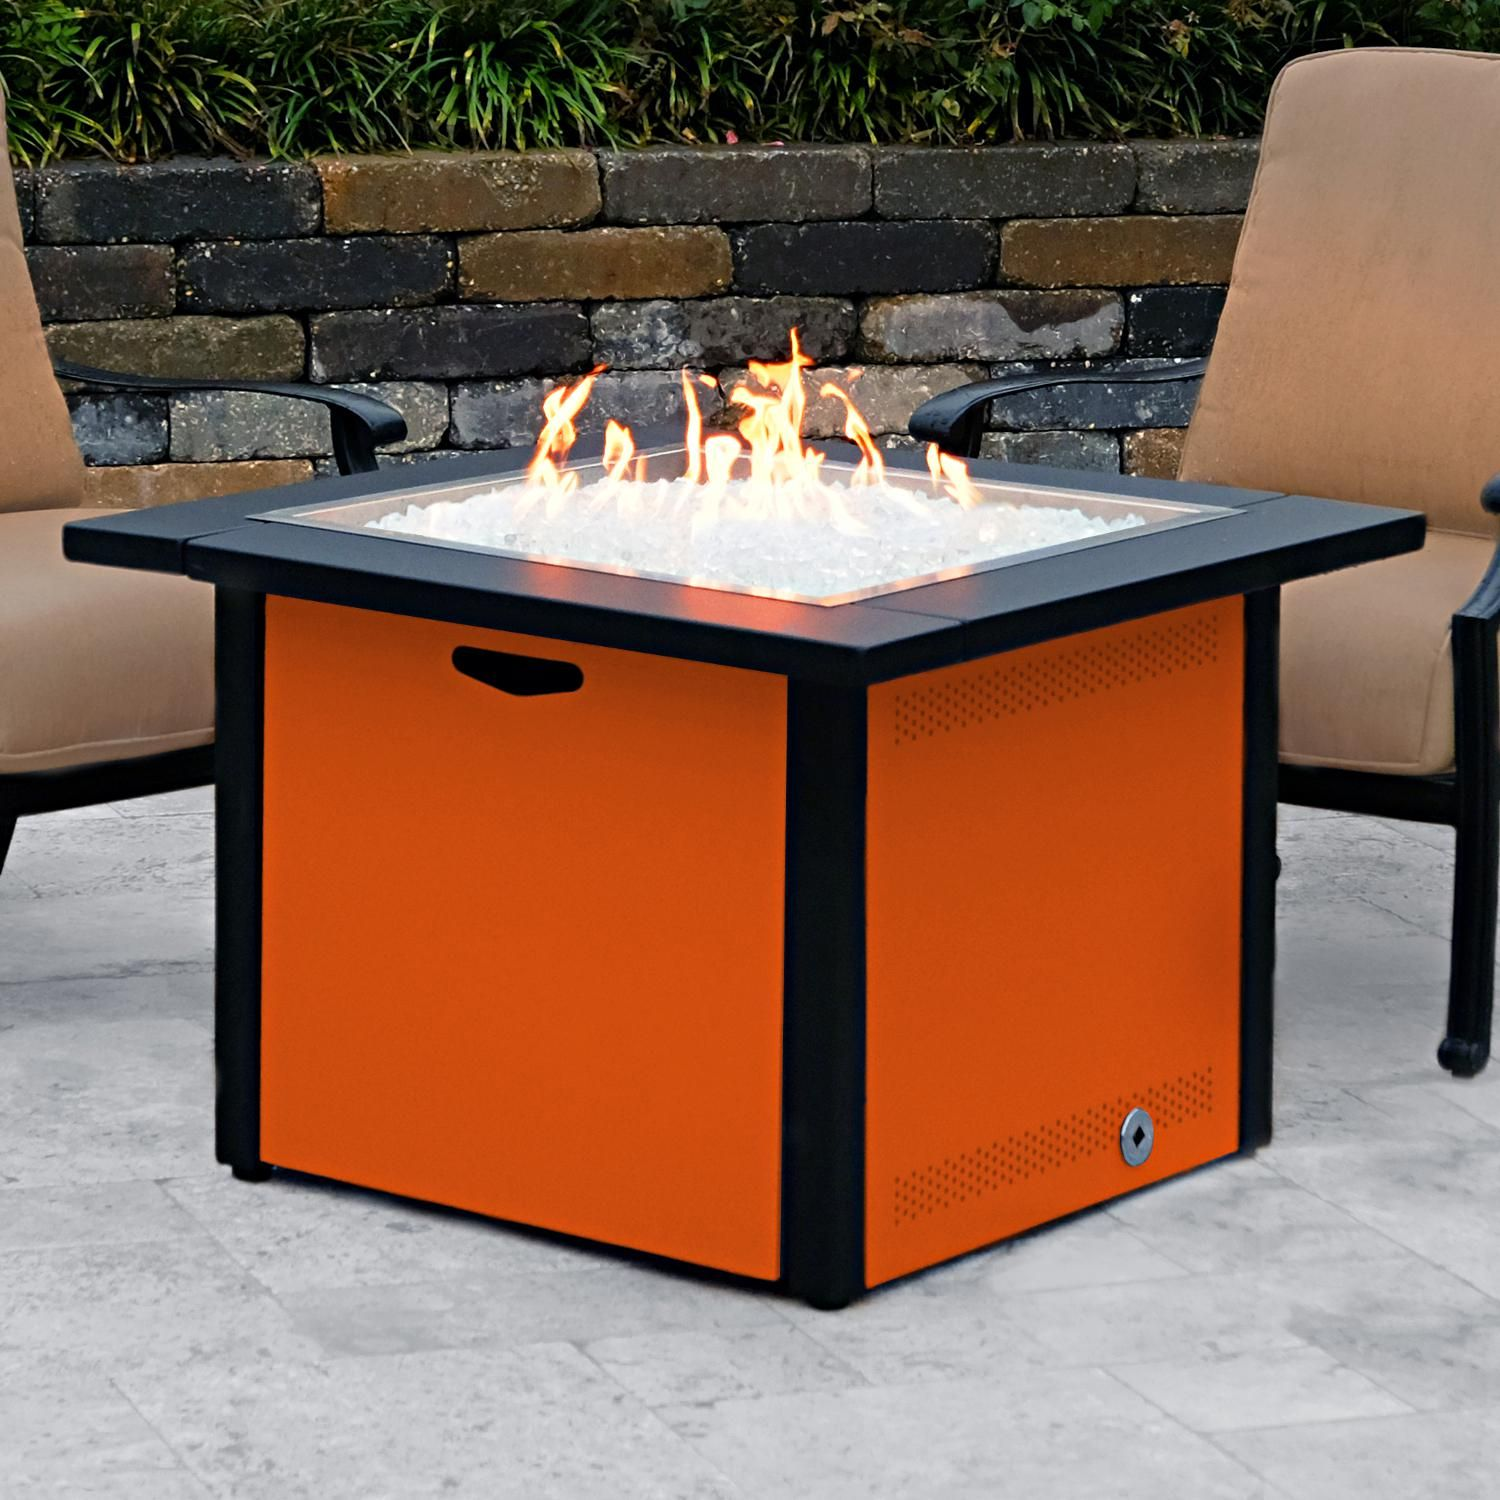 Lakeview 36 Square Propane Gas Fire Pit Table W 24 Pan And Burner Textured Orange Ch 36fp A Lp To Fire Pit Table Gas Fire Pit Table Natural Gas Fire Pit